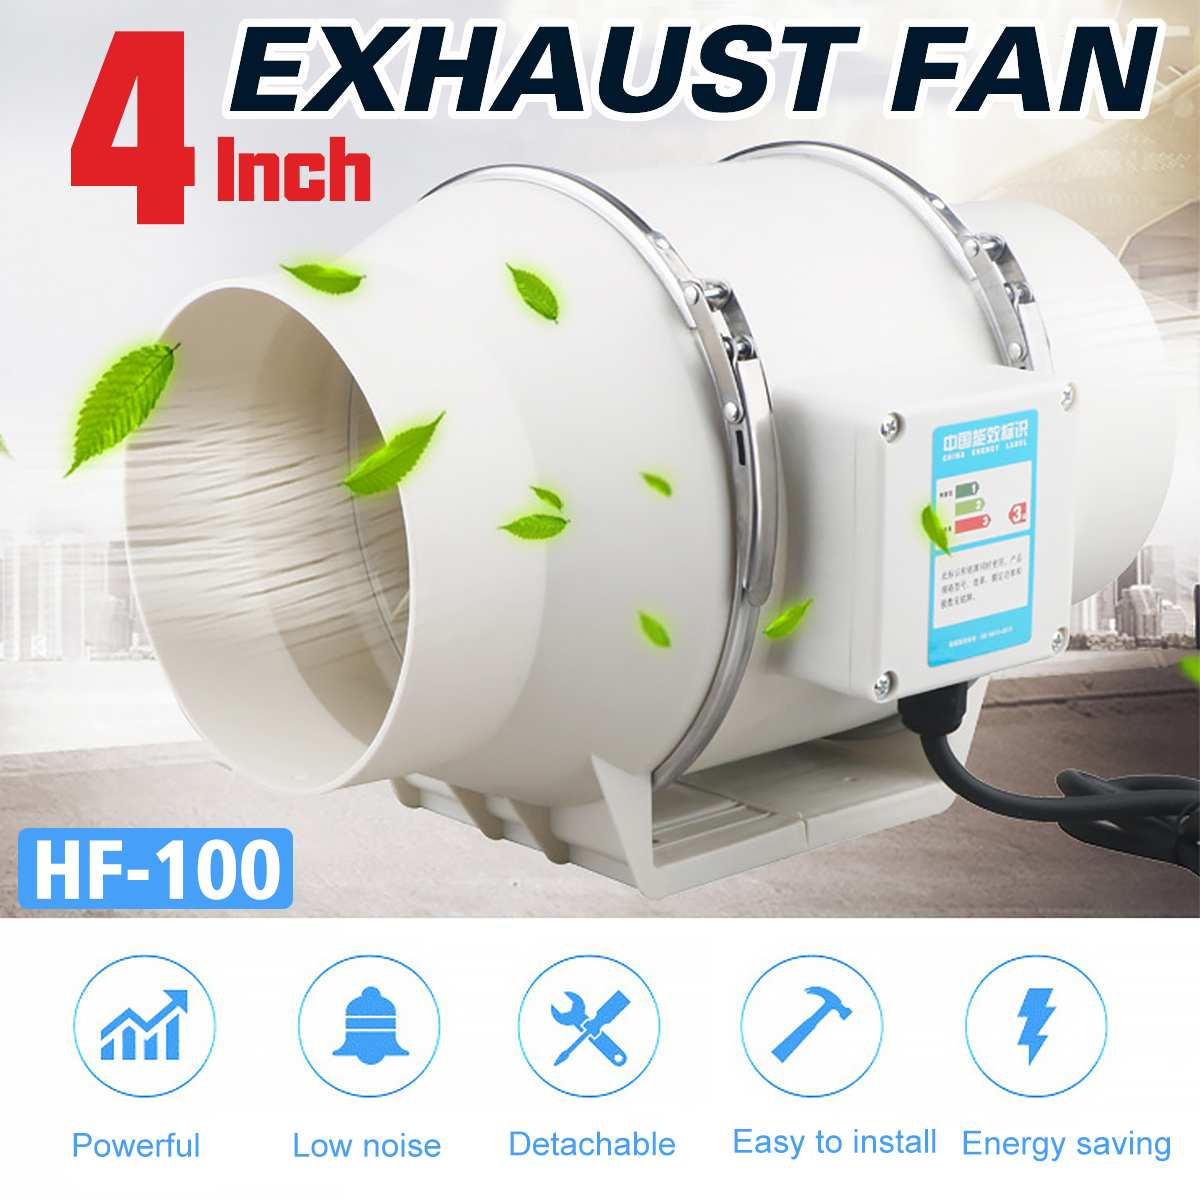 4 Inch 220V Low Noise Inline Duct Hydroponic Air Blower Fan  Exhaust Fan For Home Bathroom Ventilation Vent And Grow Room 4 Inch